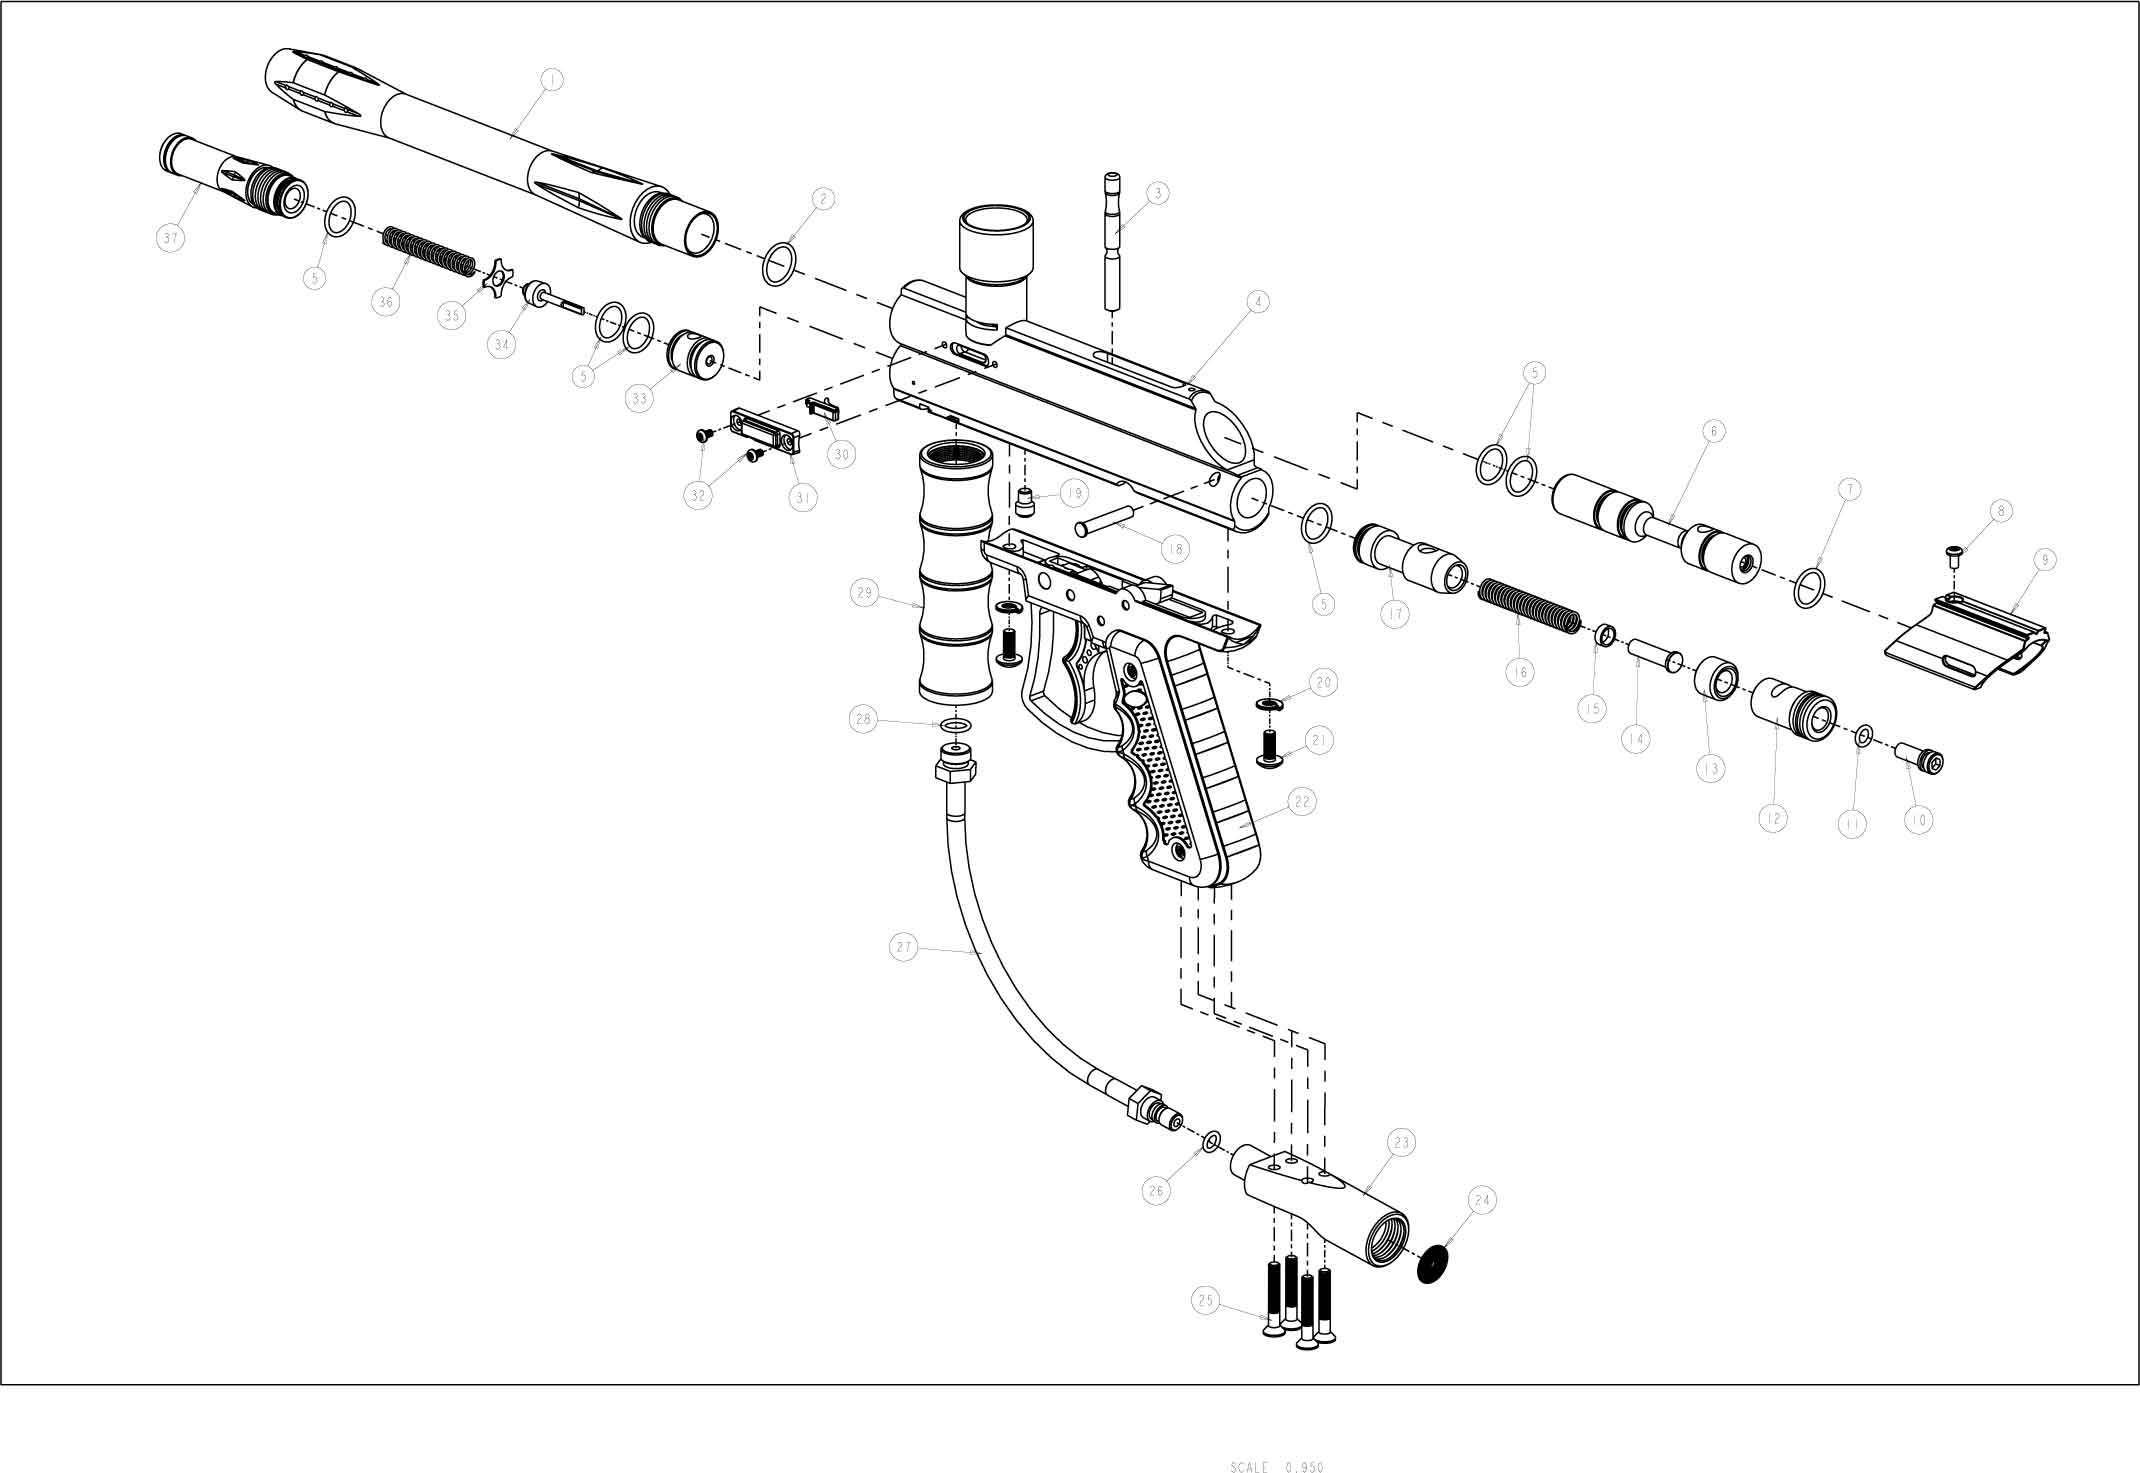 Viewloader Prodigy E Grip Gun Diagram